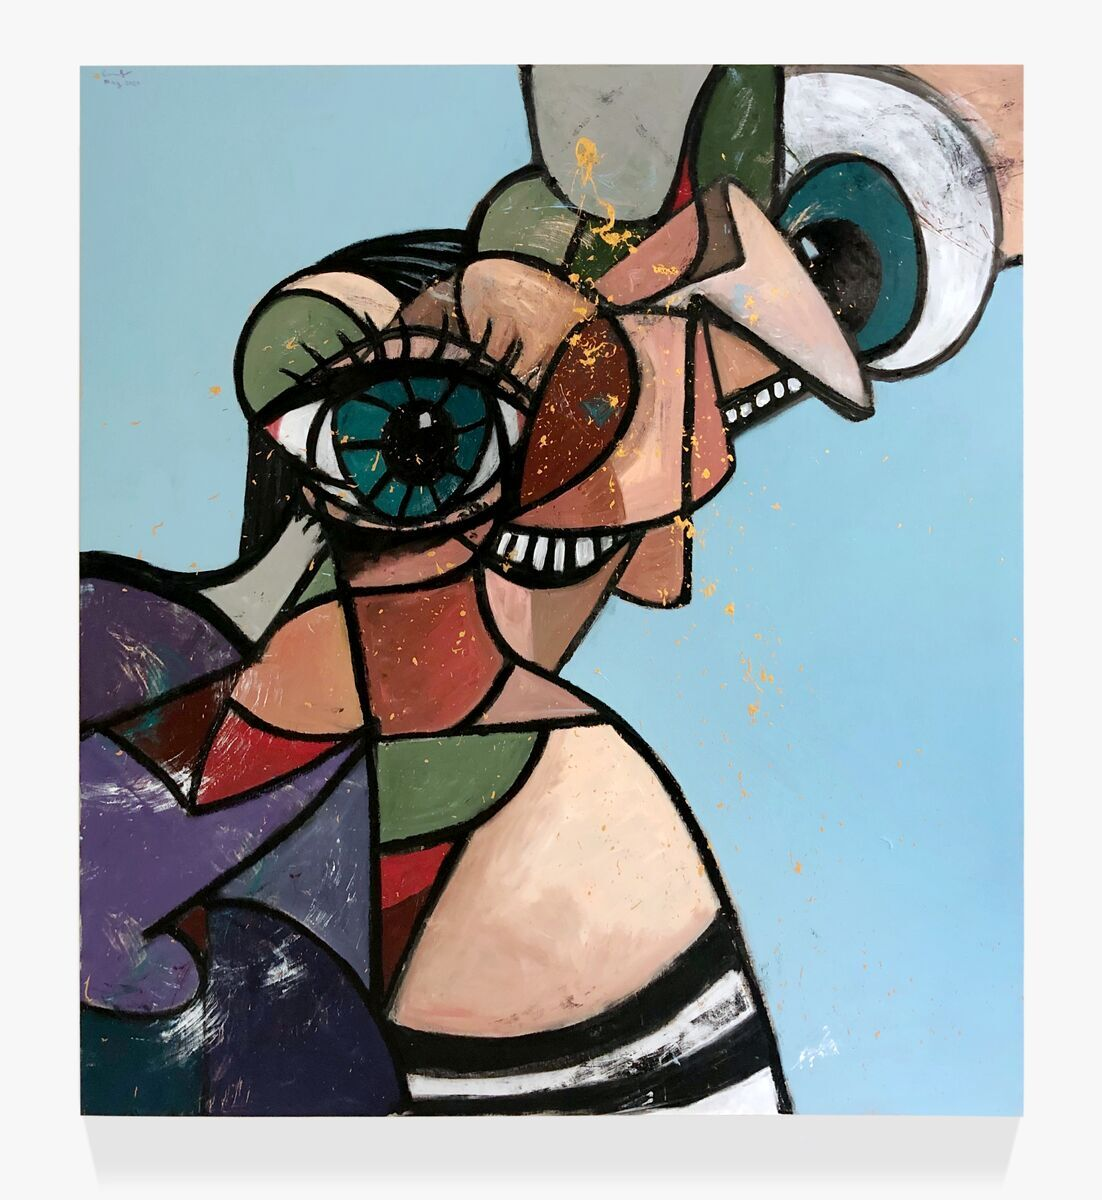 George Condo, Diagonal Evolution, 2020. © George Condo. Courtesy of the artist and Hauser & Wirth.